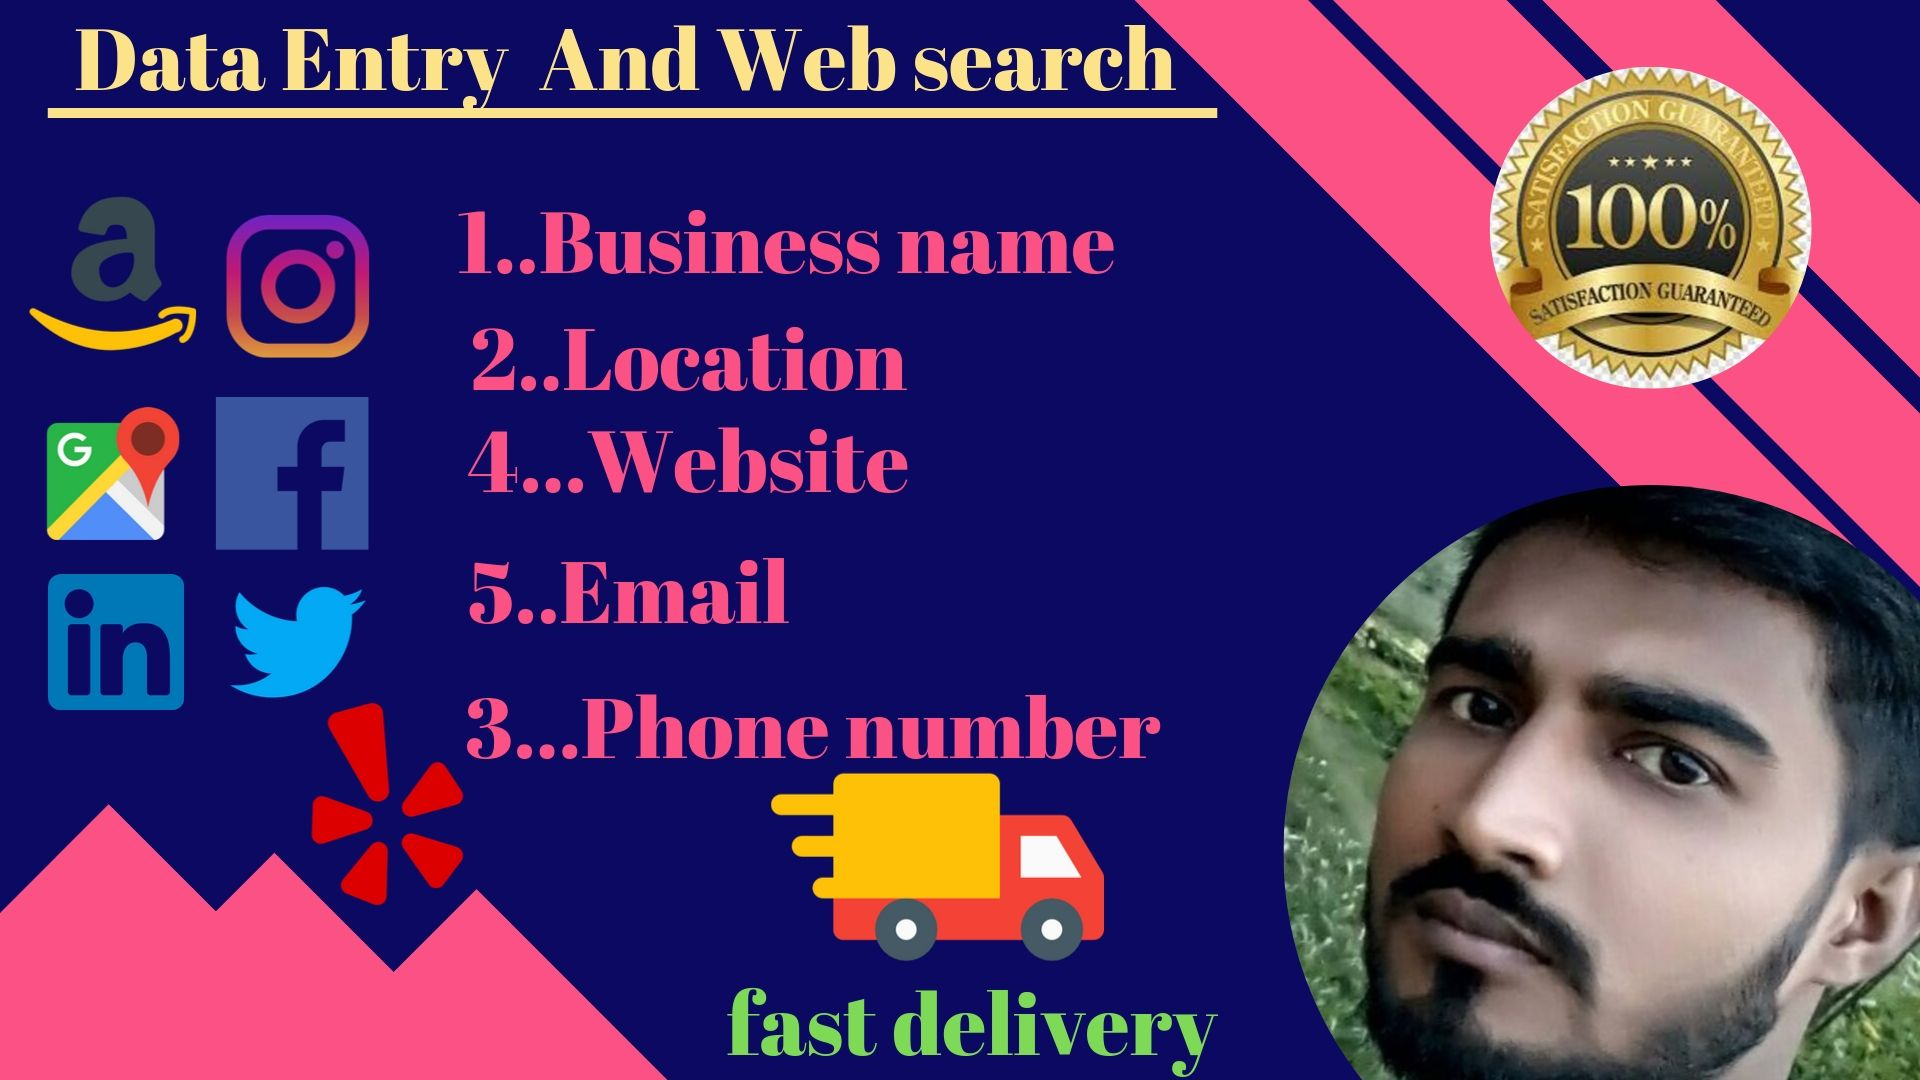 Do Advance Data Entry And Web search in your time